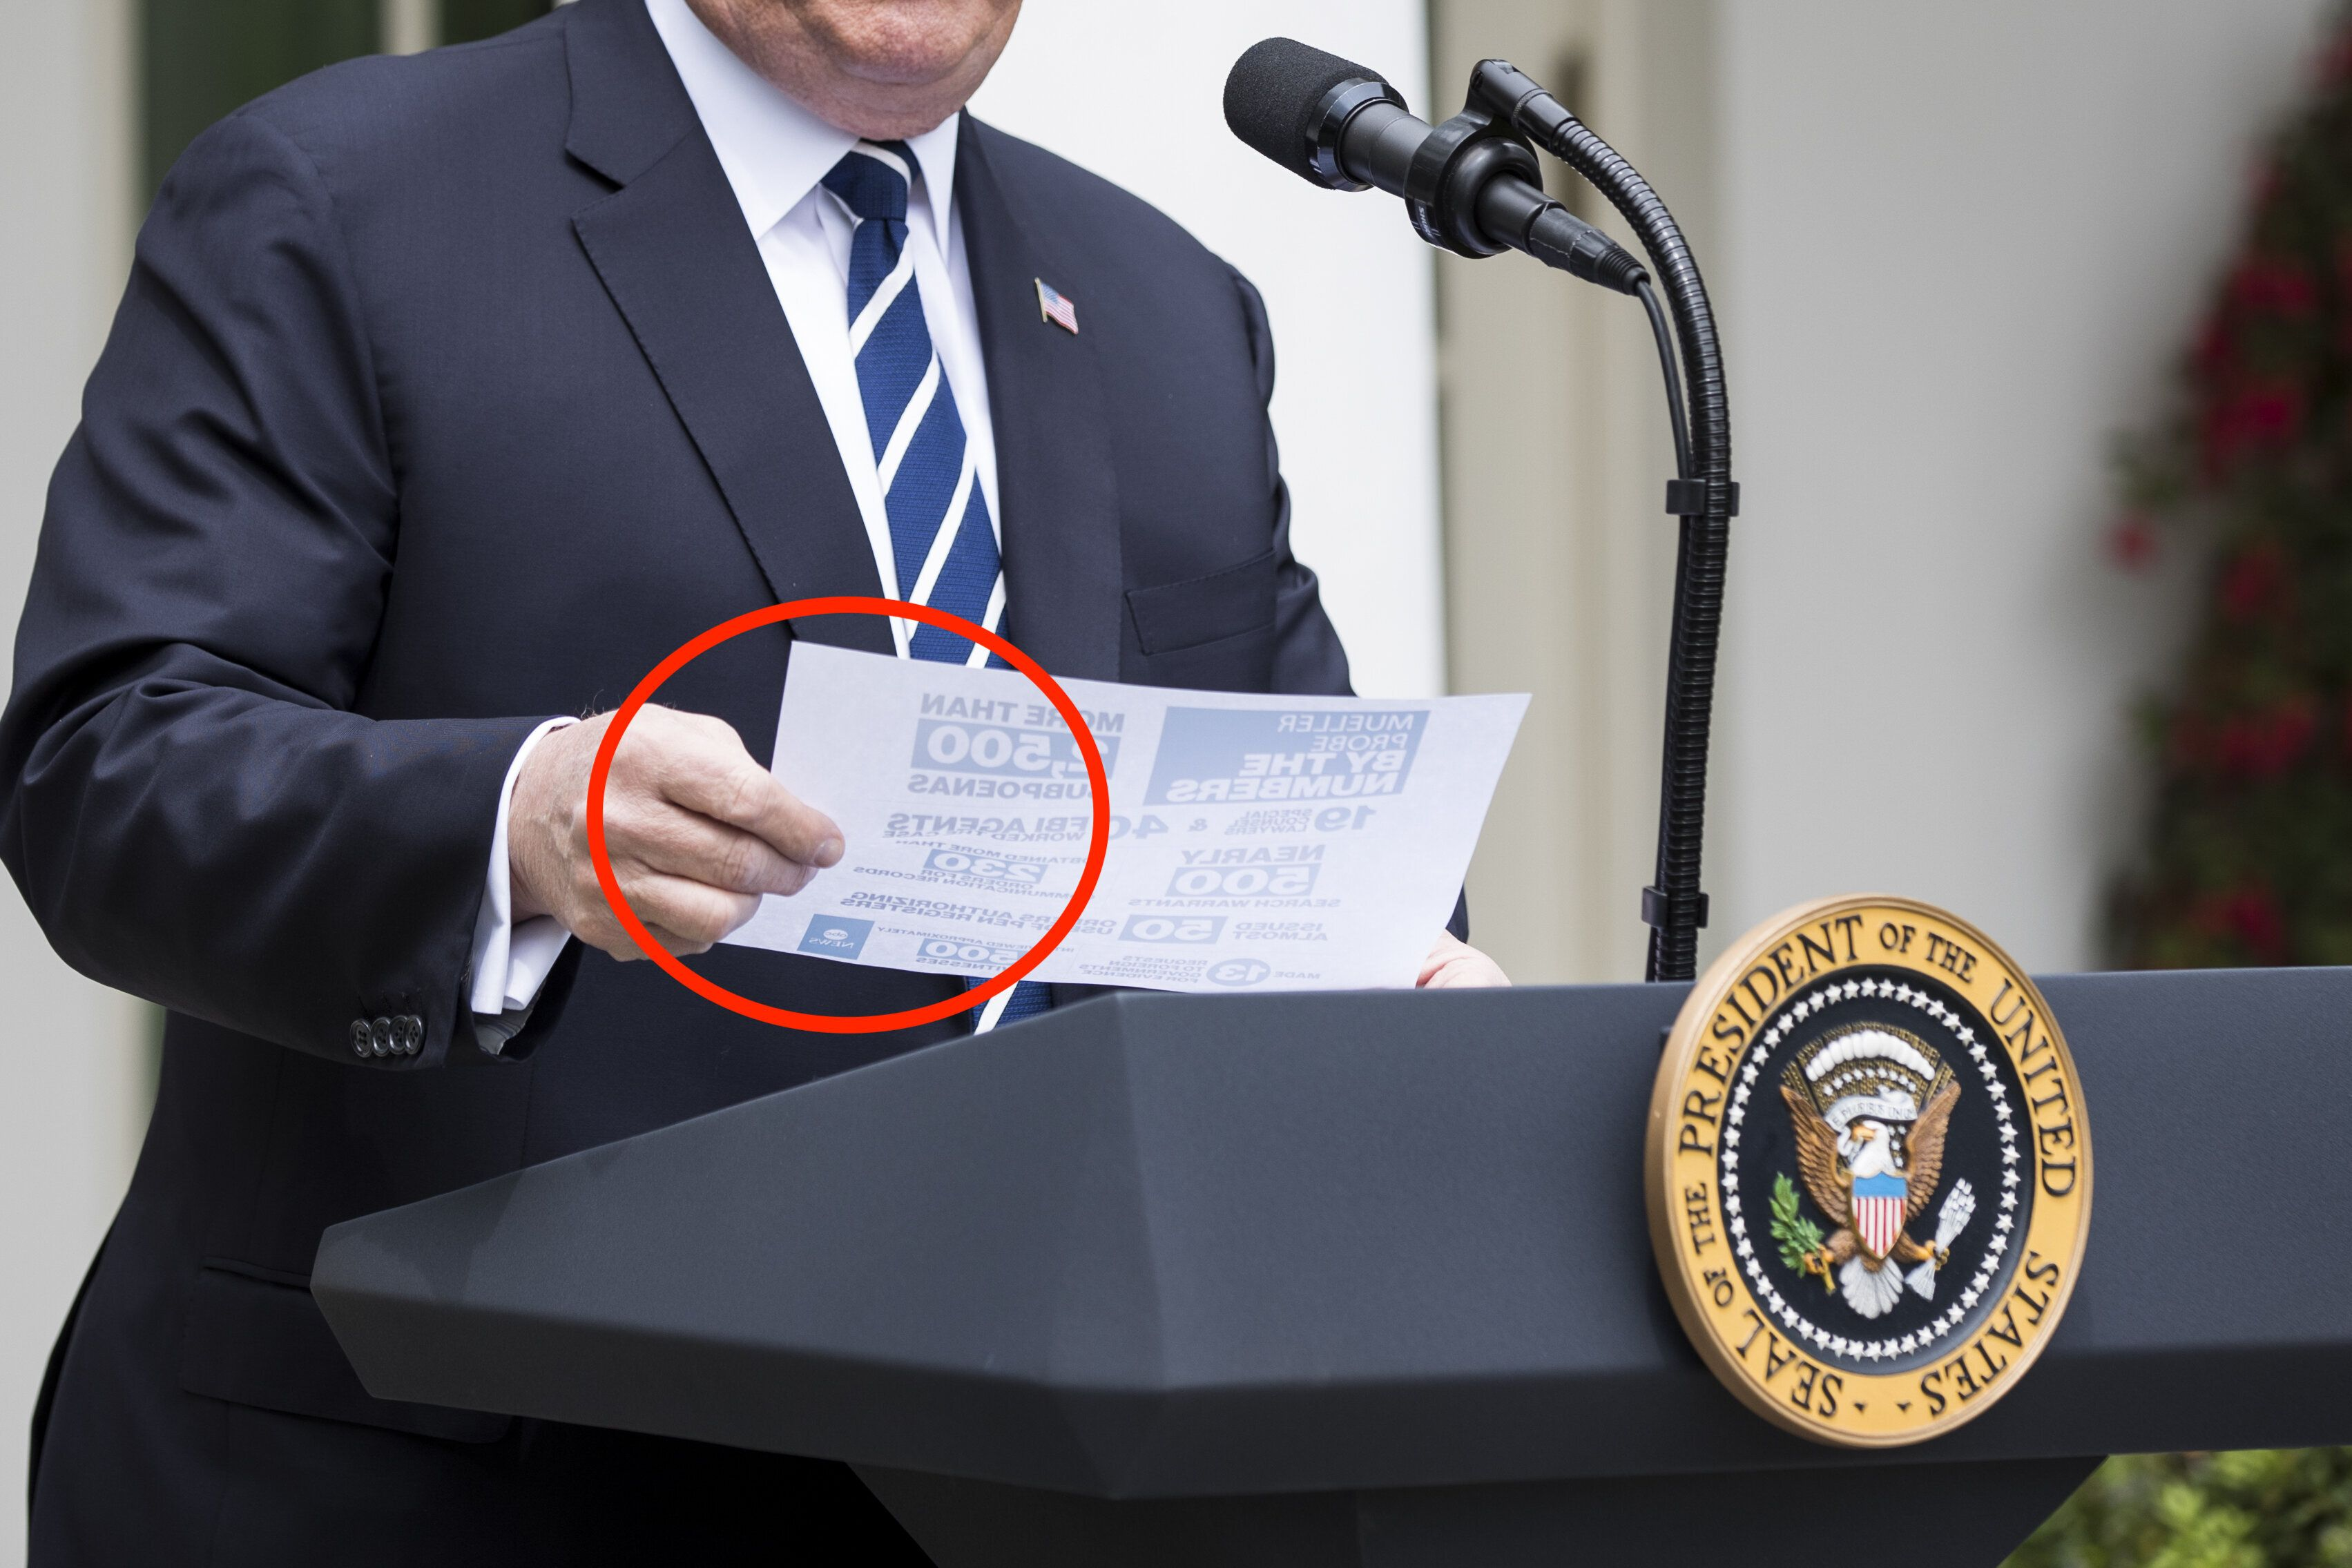 U.S. President Donald Trump holds a page of notes while speaking during a news conference in the Rose Garden of the White House in Washington, D.C., U.S., on Wednesday, May 22, 2019. Trump said he had told Democratic leaders he can't work with them on an infrastructure plan while they're investigating his administration. Photographer: Sarah Silbiger/Bloomberg